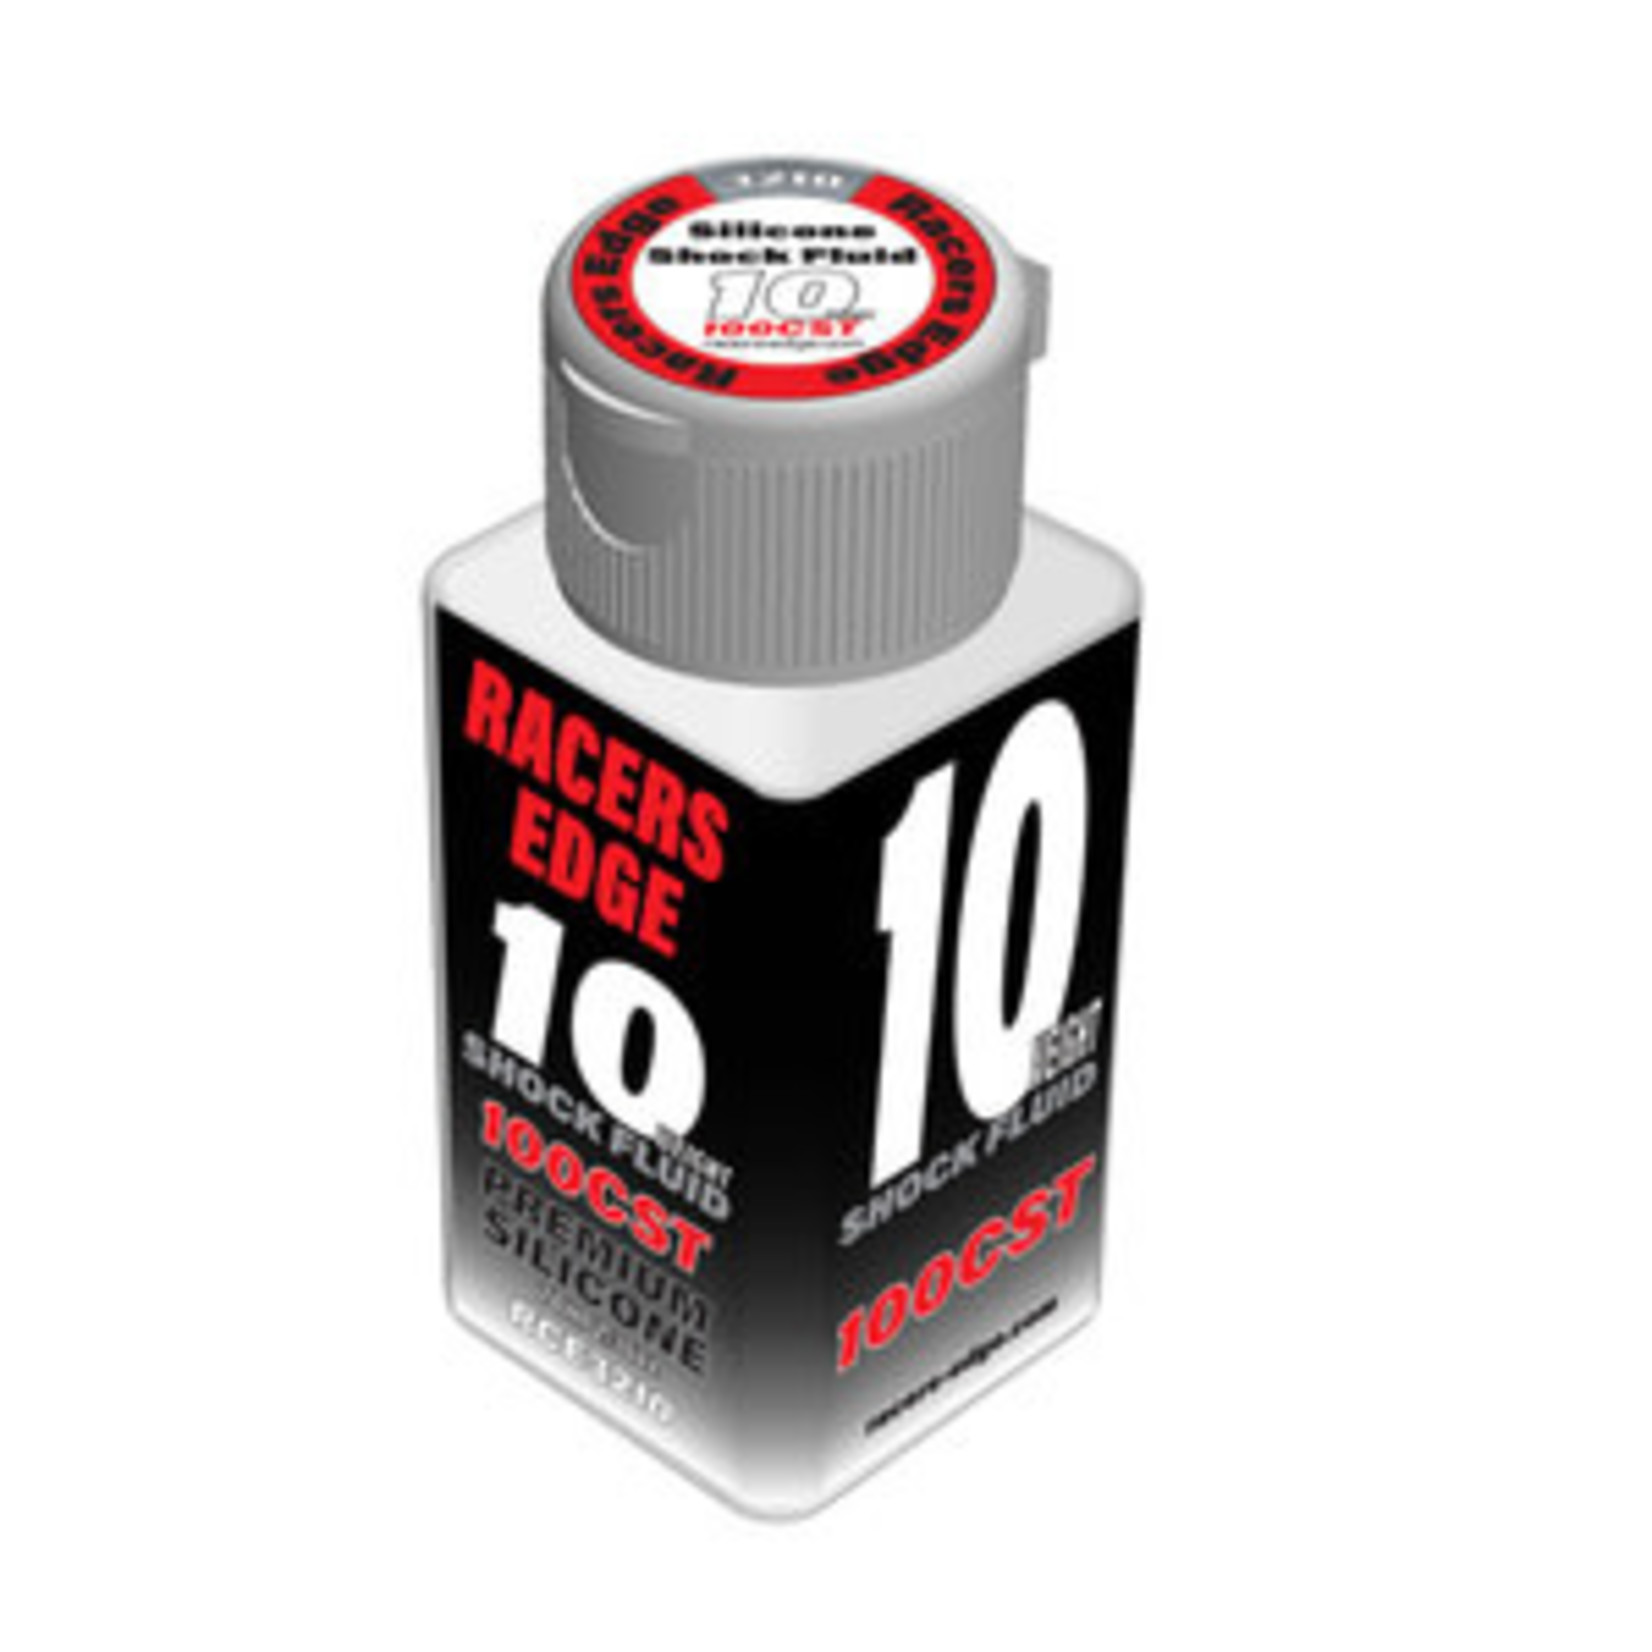 Racers Edge 10 Weight, 100cSt, 70ml 2.36oz Pure Silicone Shock Oil